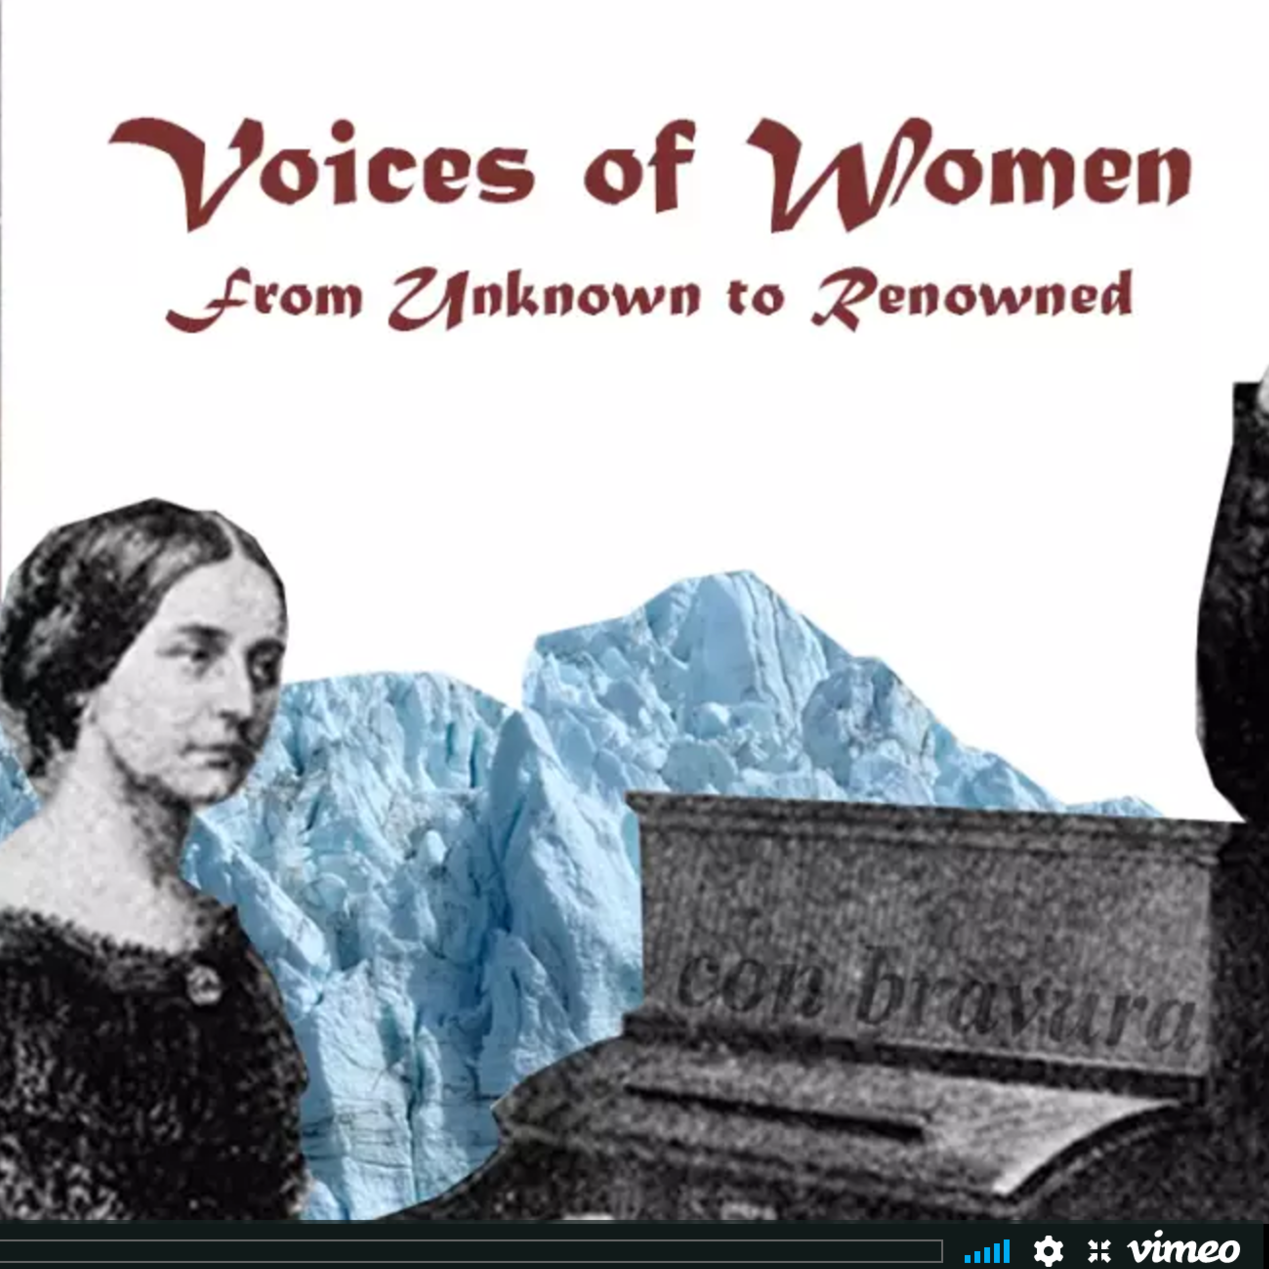 Heather Fetrow's - Voices of Women